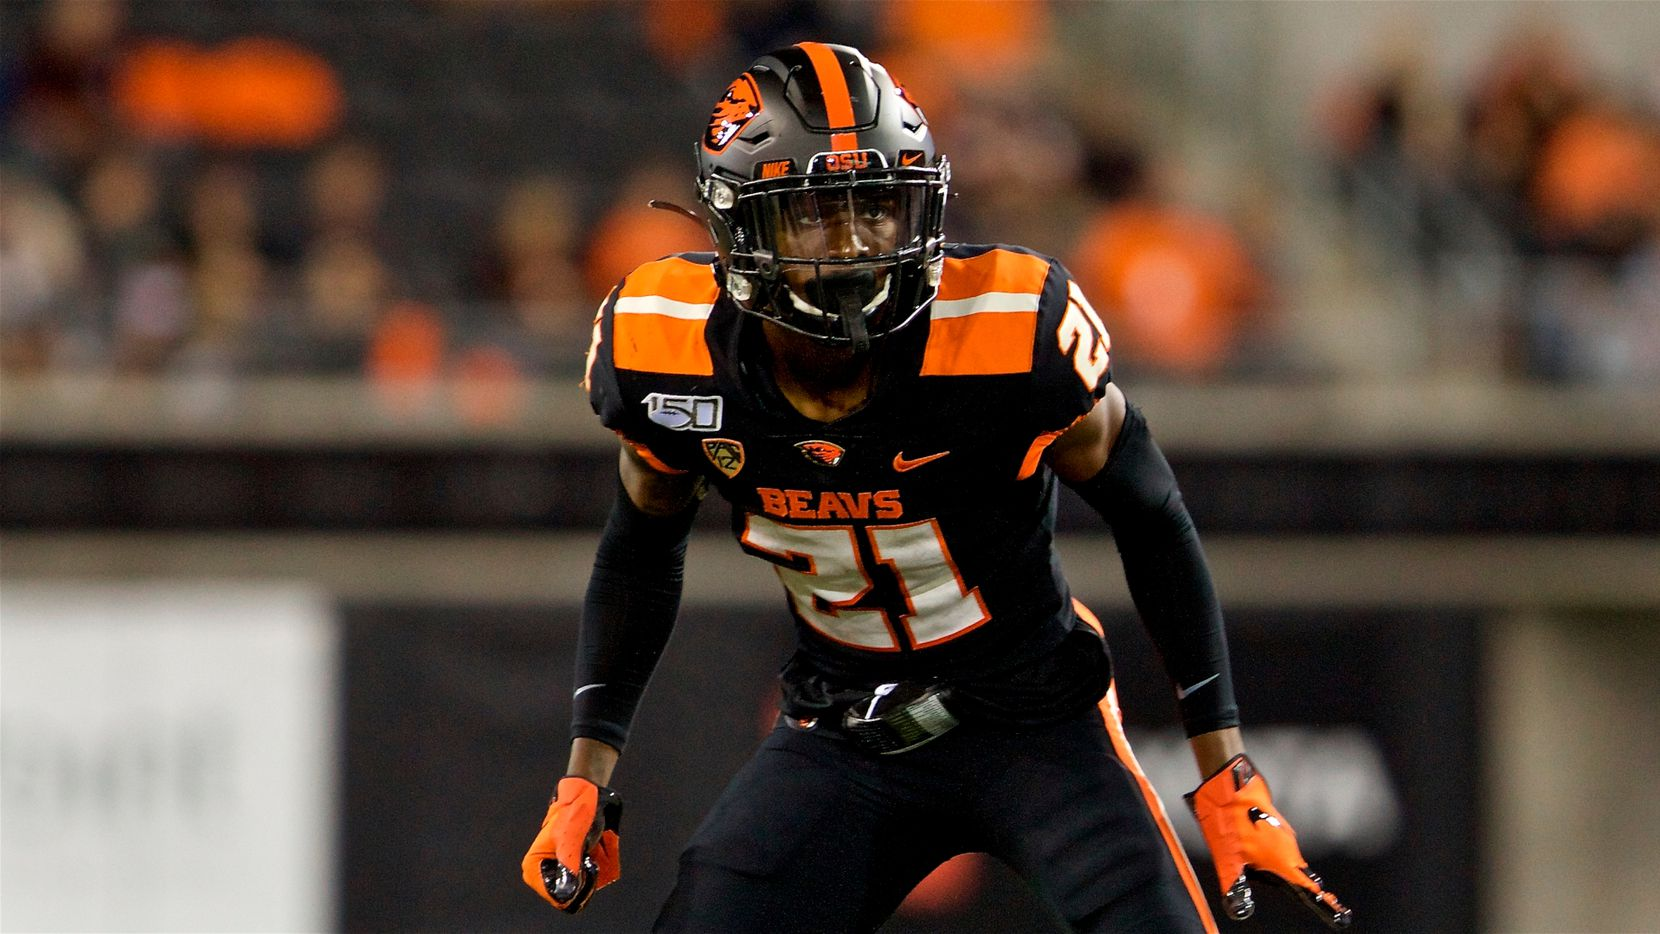 Oregon State Beavers defensive back Nahshon Wright during an NCAA football game on Friday, Aug. 30, 2019 in Corvallis, Ore.